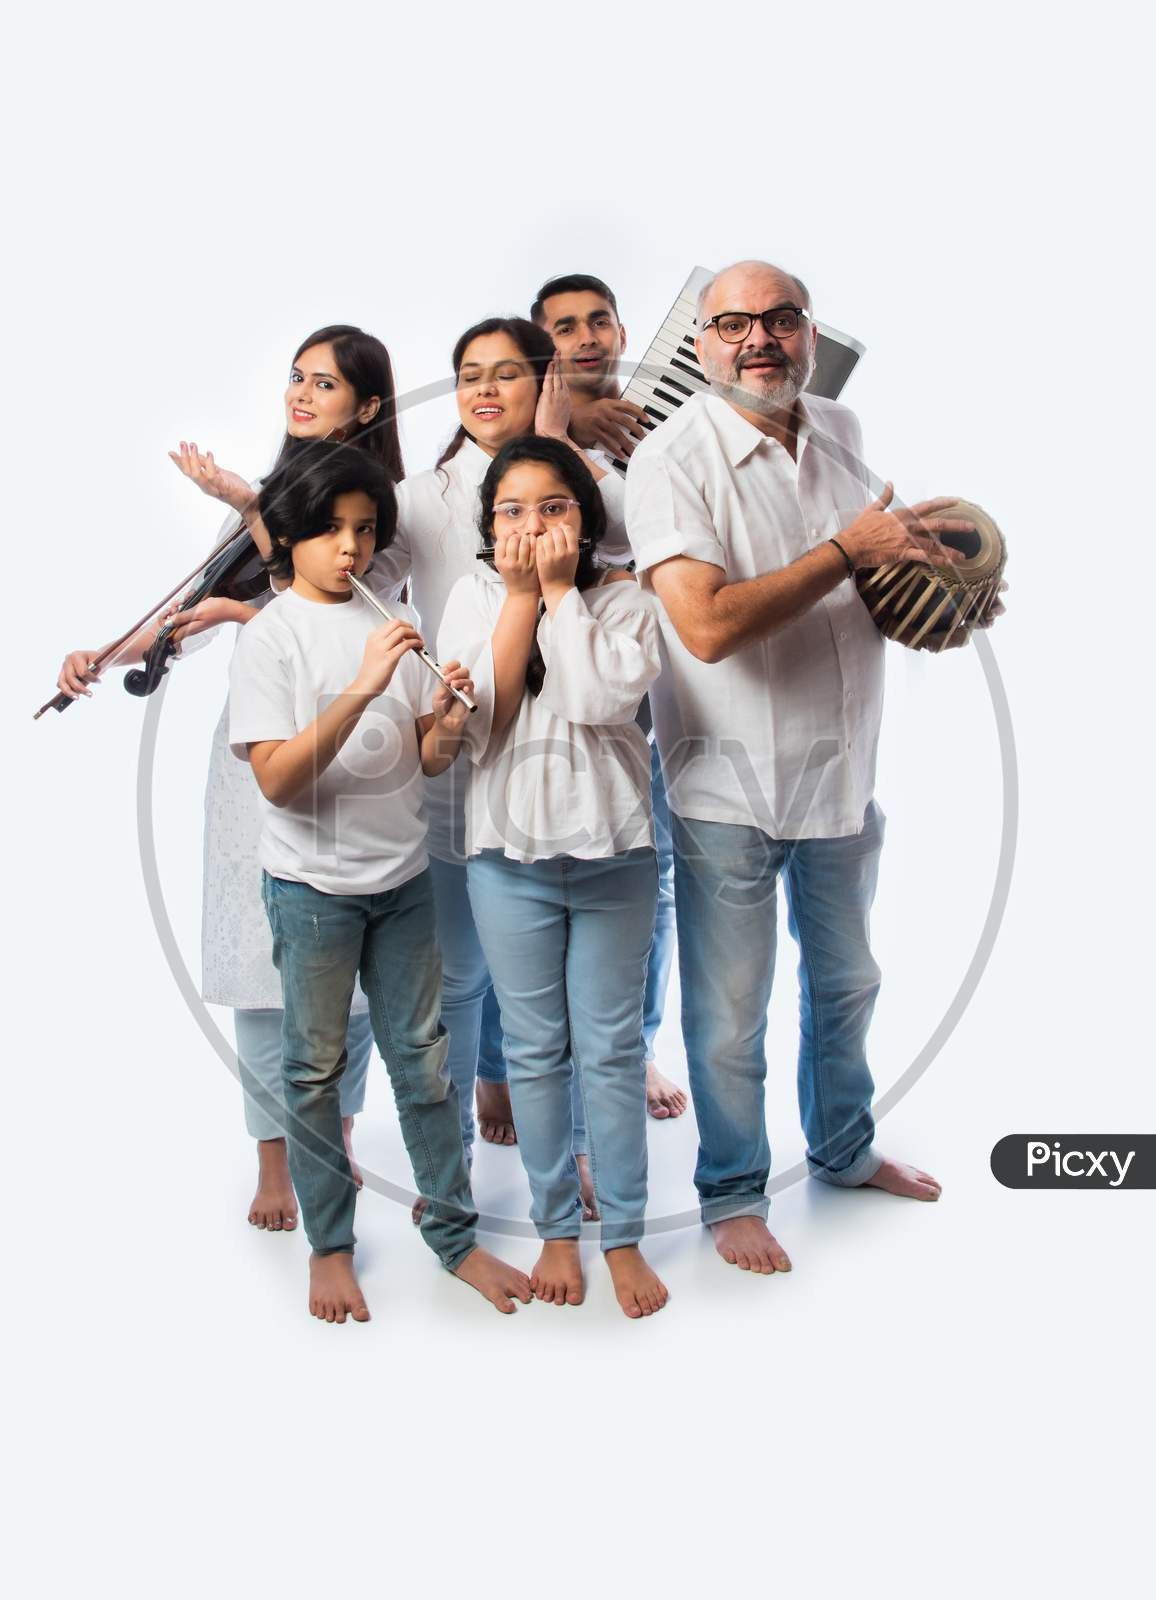 Indian Family Playing Music Instruments Together As A Band, Performing Against White